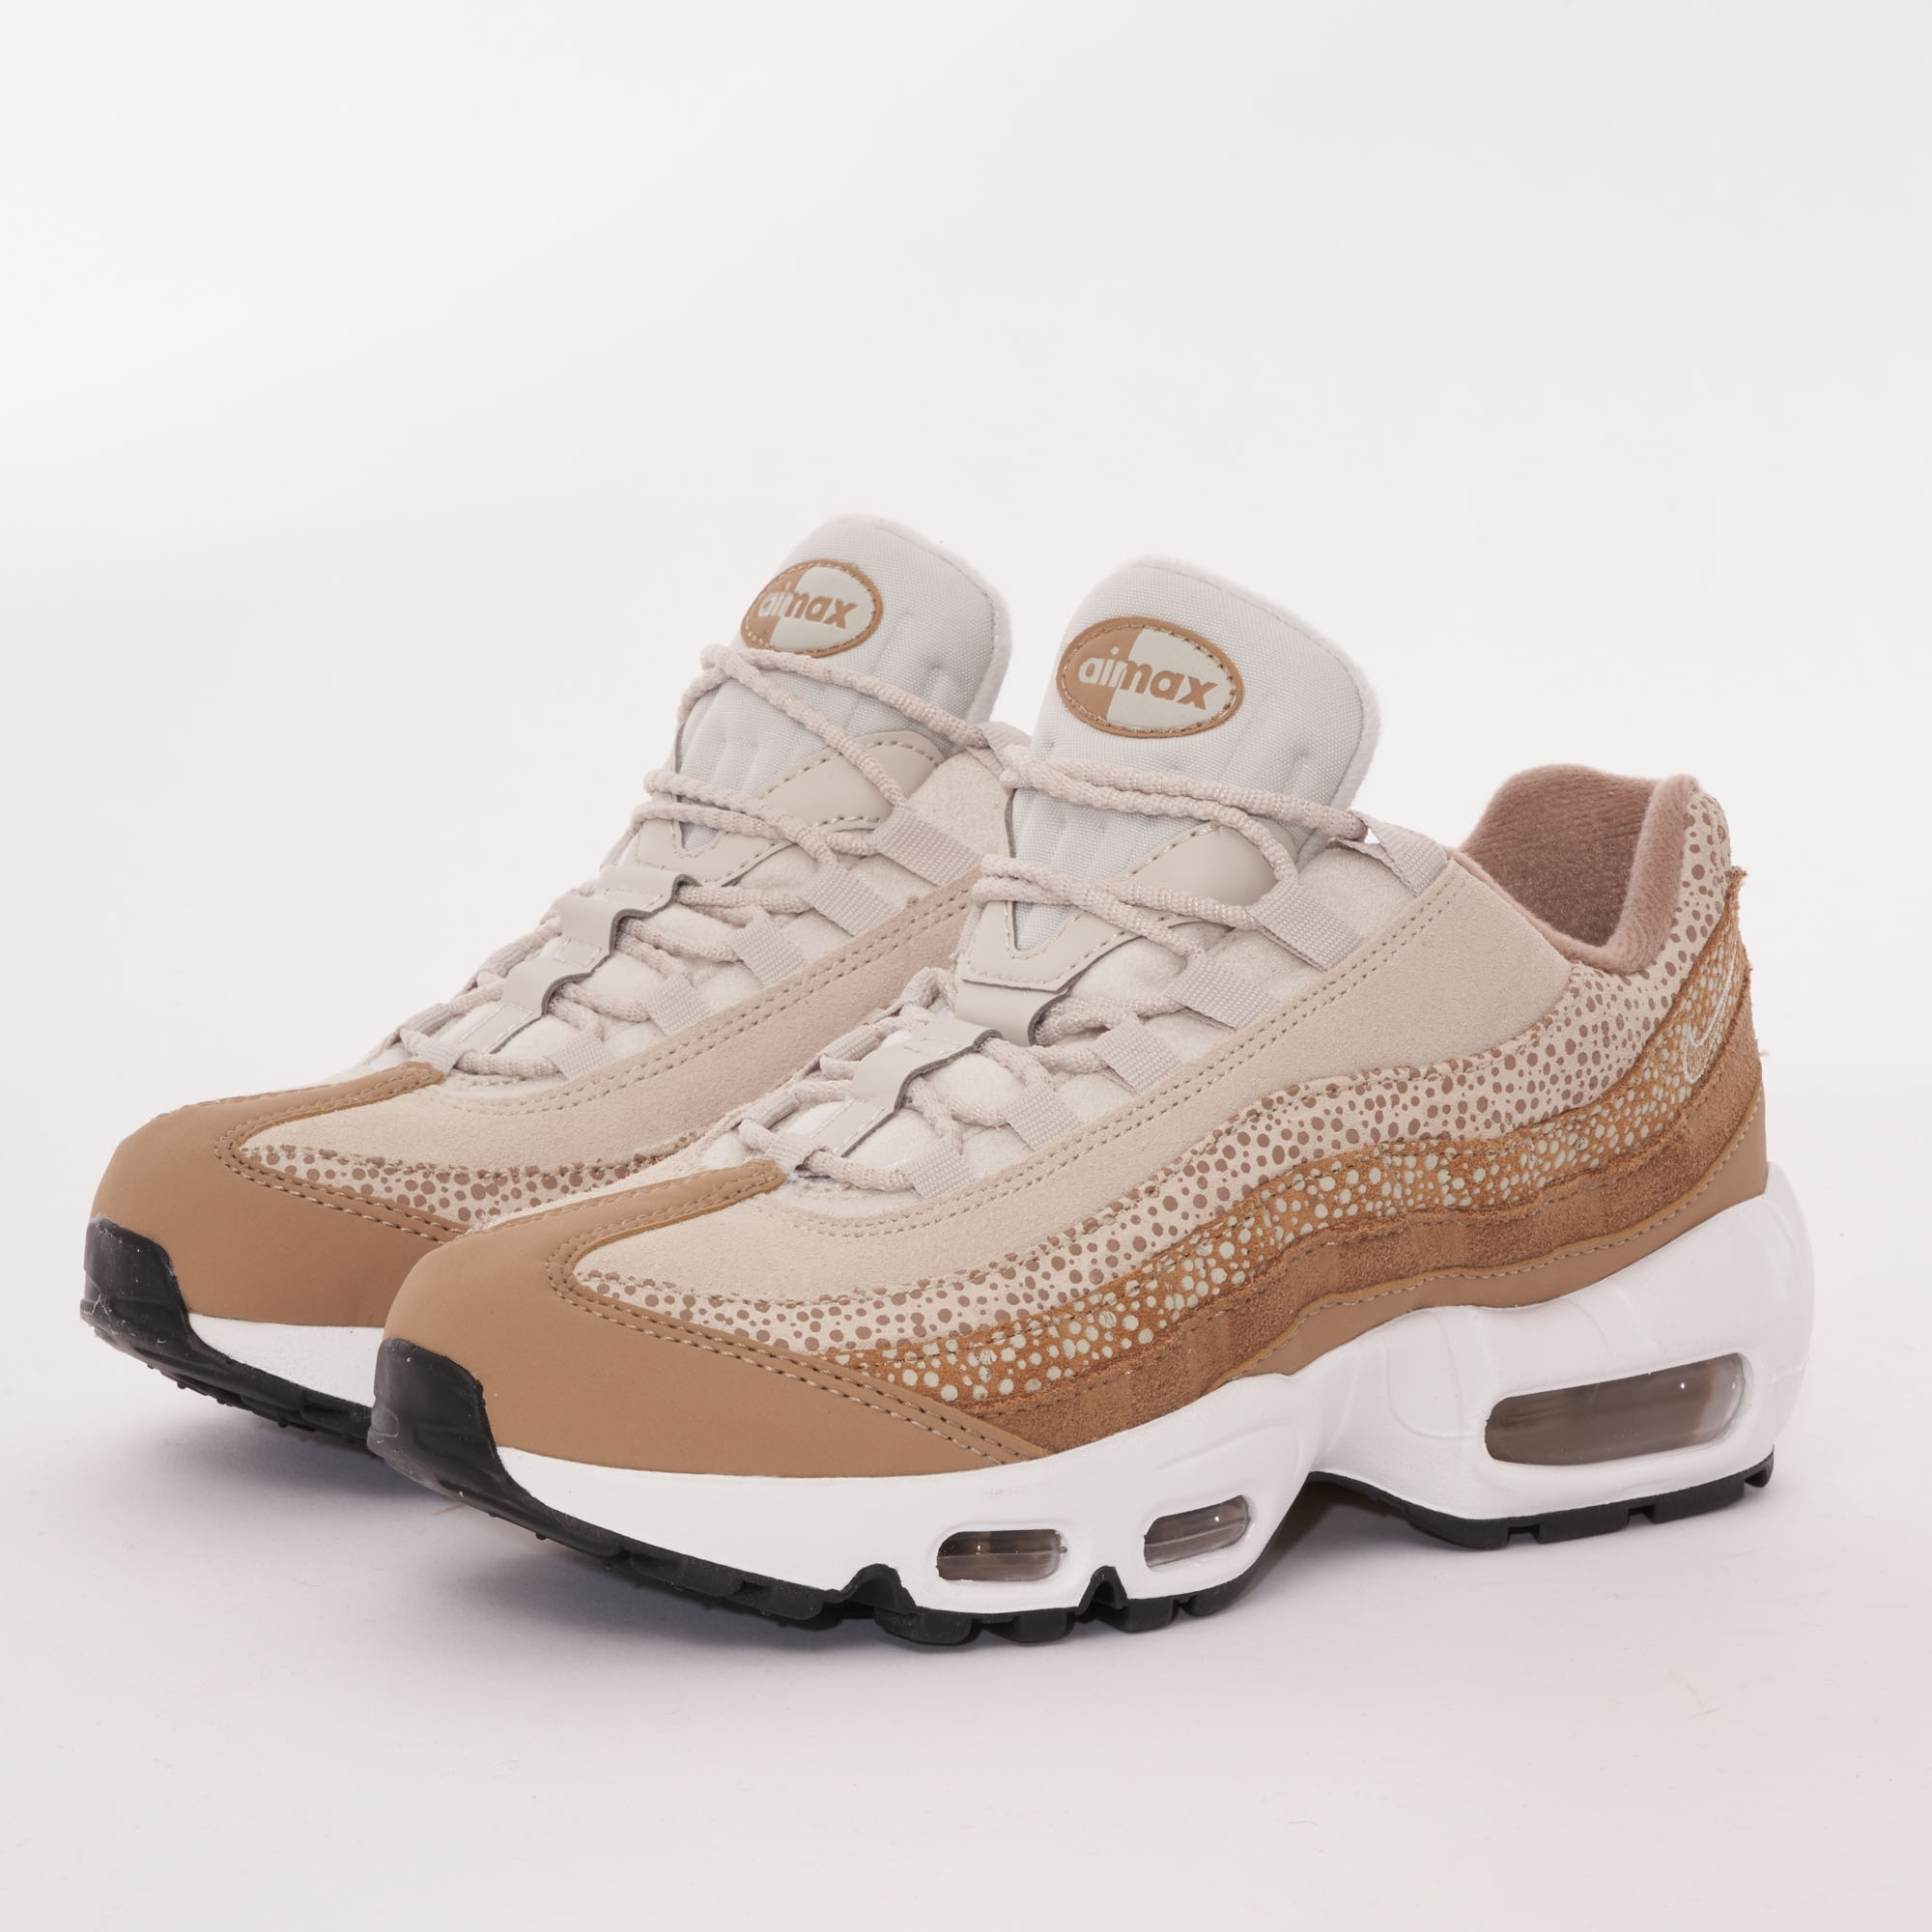 pretty nice b1340 968dc Air Max 95 Premium - Canteen, Light Bone & Black